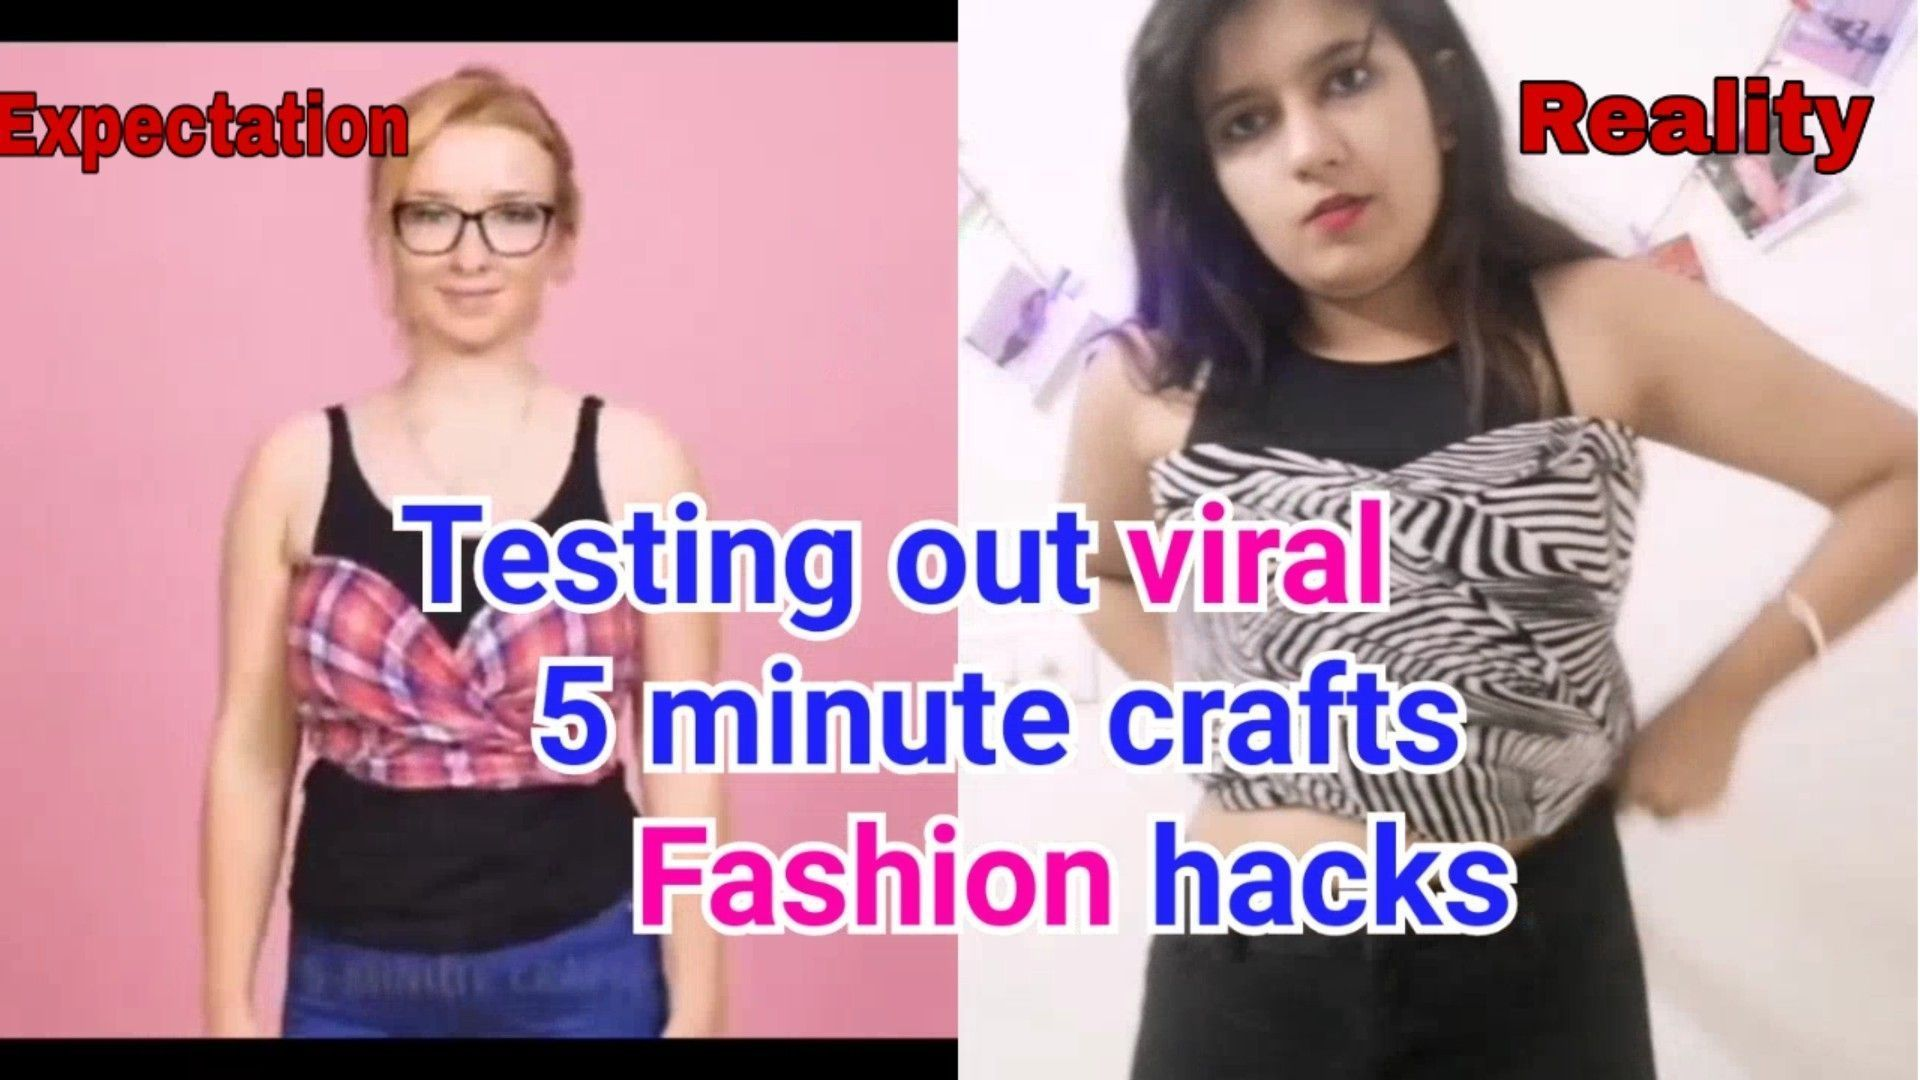 testing out viral 5 minute crafts fashion hacks #5minutencraftsvideo #5minutencraftsvideo testing out viral 5 minute crafts fashion hacks #5minutencraftsvideo #5minutecraftsvideos testing out viral 5 minute crafts fashion hacks #5minutencraftsvideo #5minutencraftsvideo testing out viral 5 minute crafts fashion hacks #5minutencraftsvideo #5minutecraftsvideos